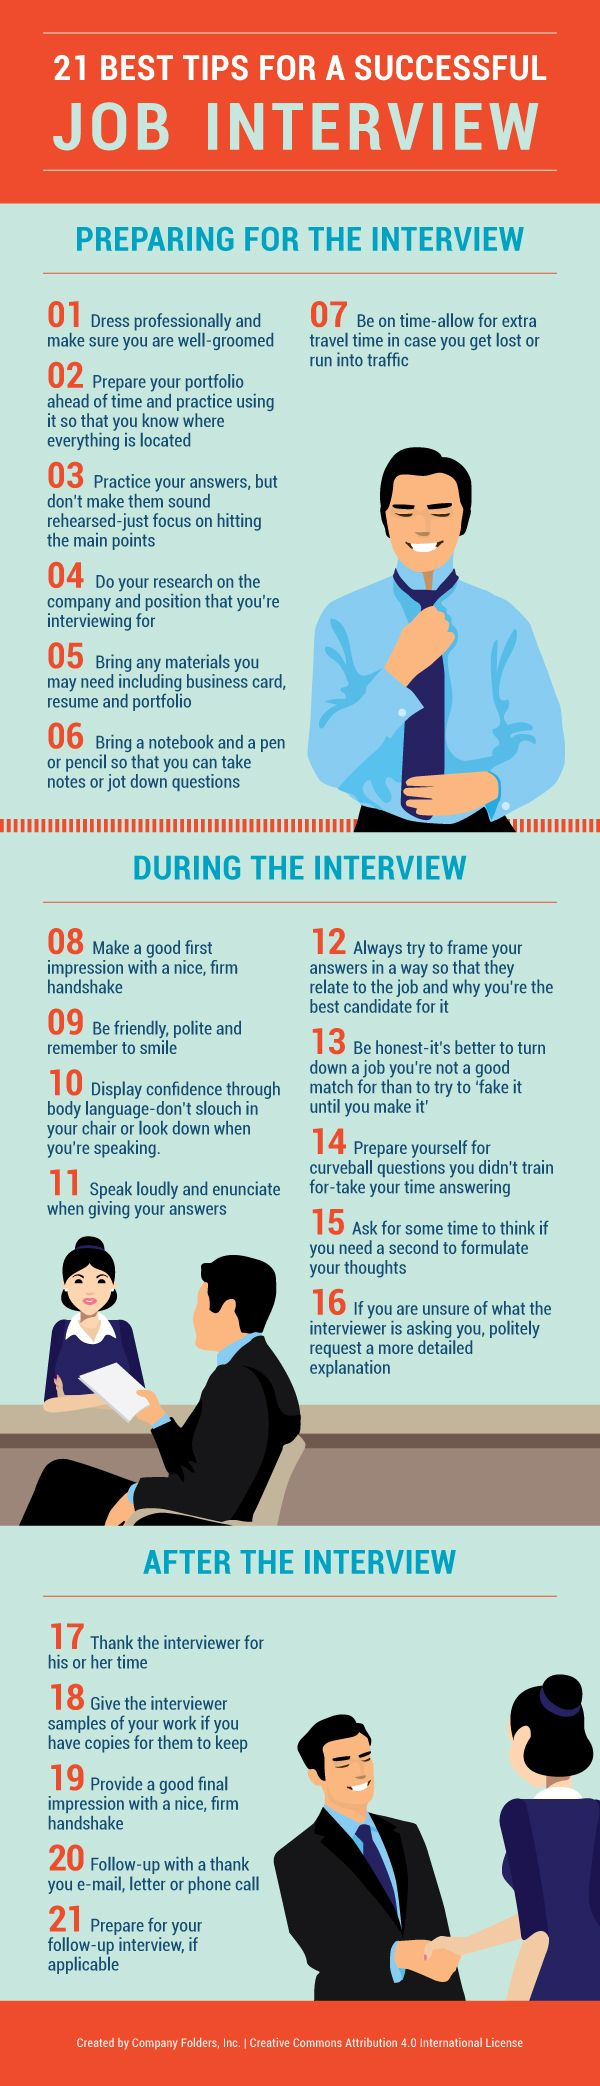 22 Graphic Design Interview Tips Common Questions Best Answers Job Interview Tips Job Interview Interview Tips